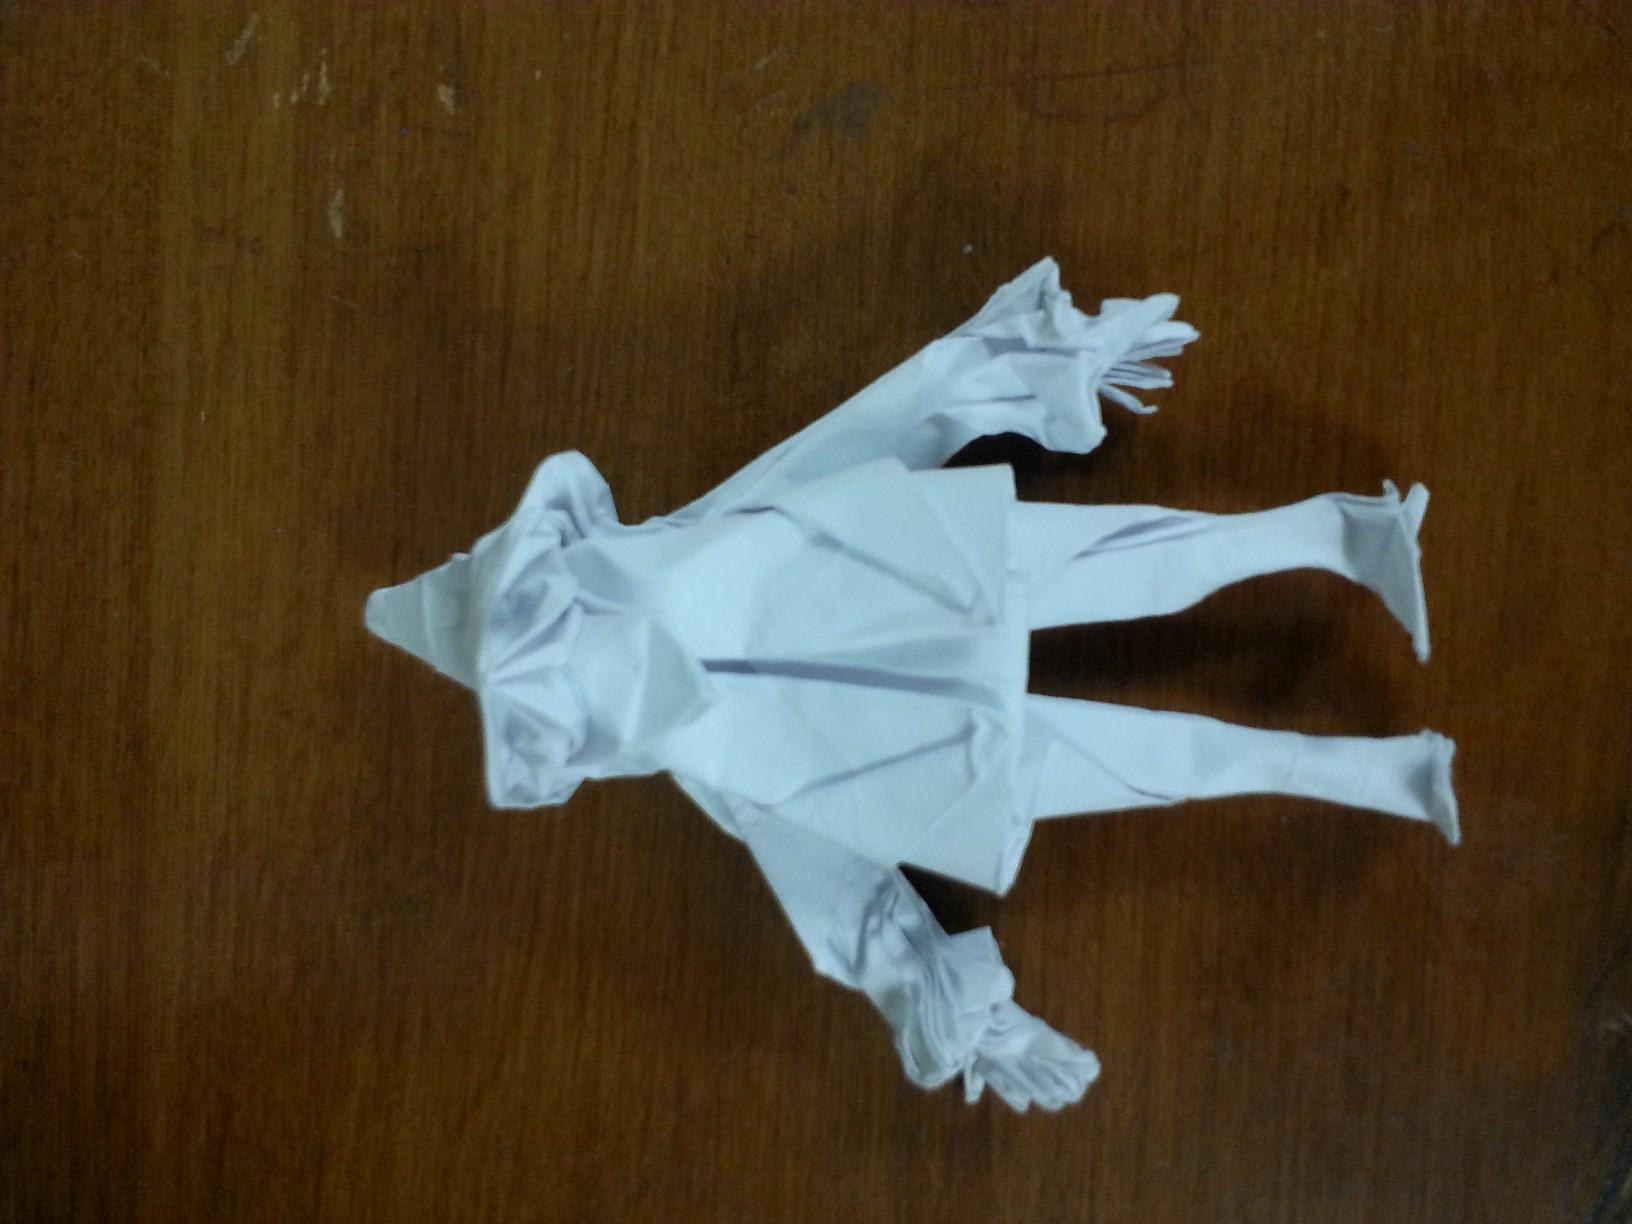 An example of an origami wizard, created by club president and founder, freshman Michael Gancz.